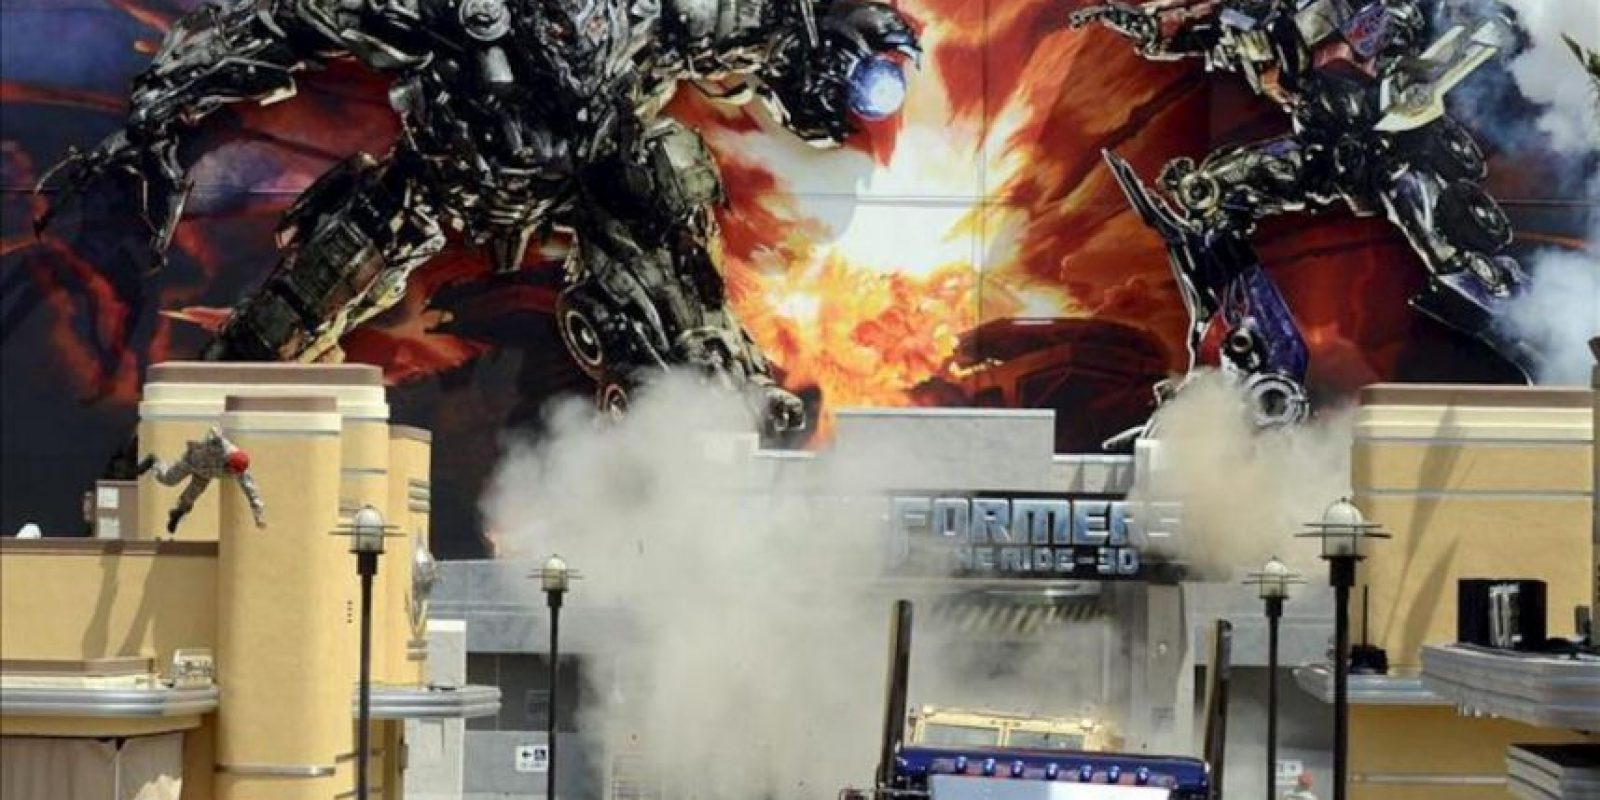 Actores y dobles en acción durante un pase de prensa de 'Transformers: The Ride-3D – The Greatest Battle You'll Ever Ride', en Universal City, de los Estudios de cine Universal, California (EE.UU.). EFE